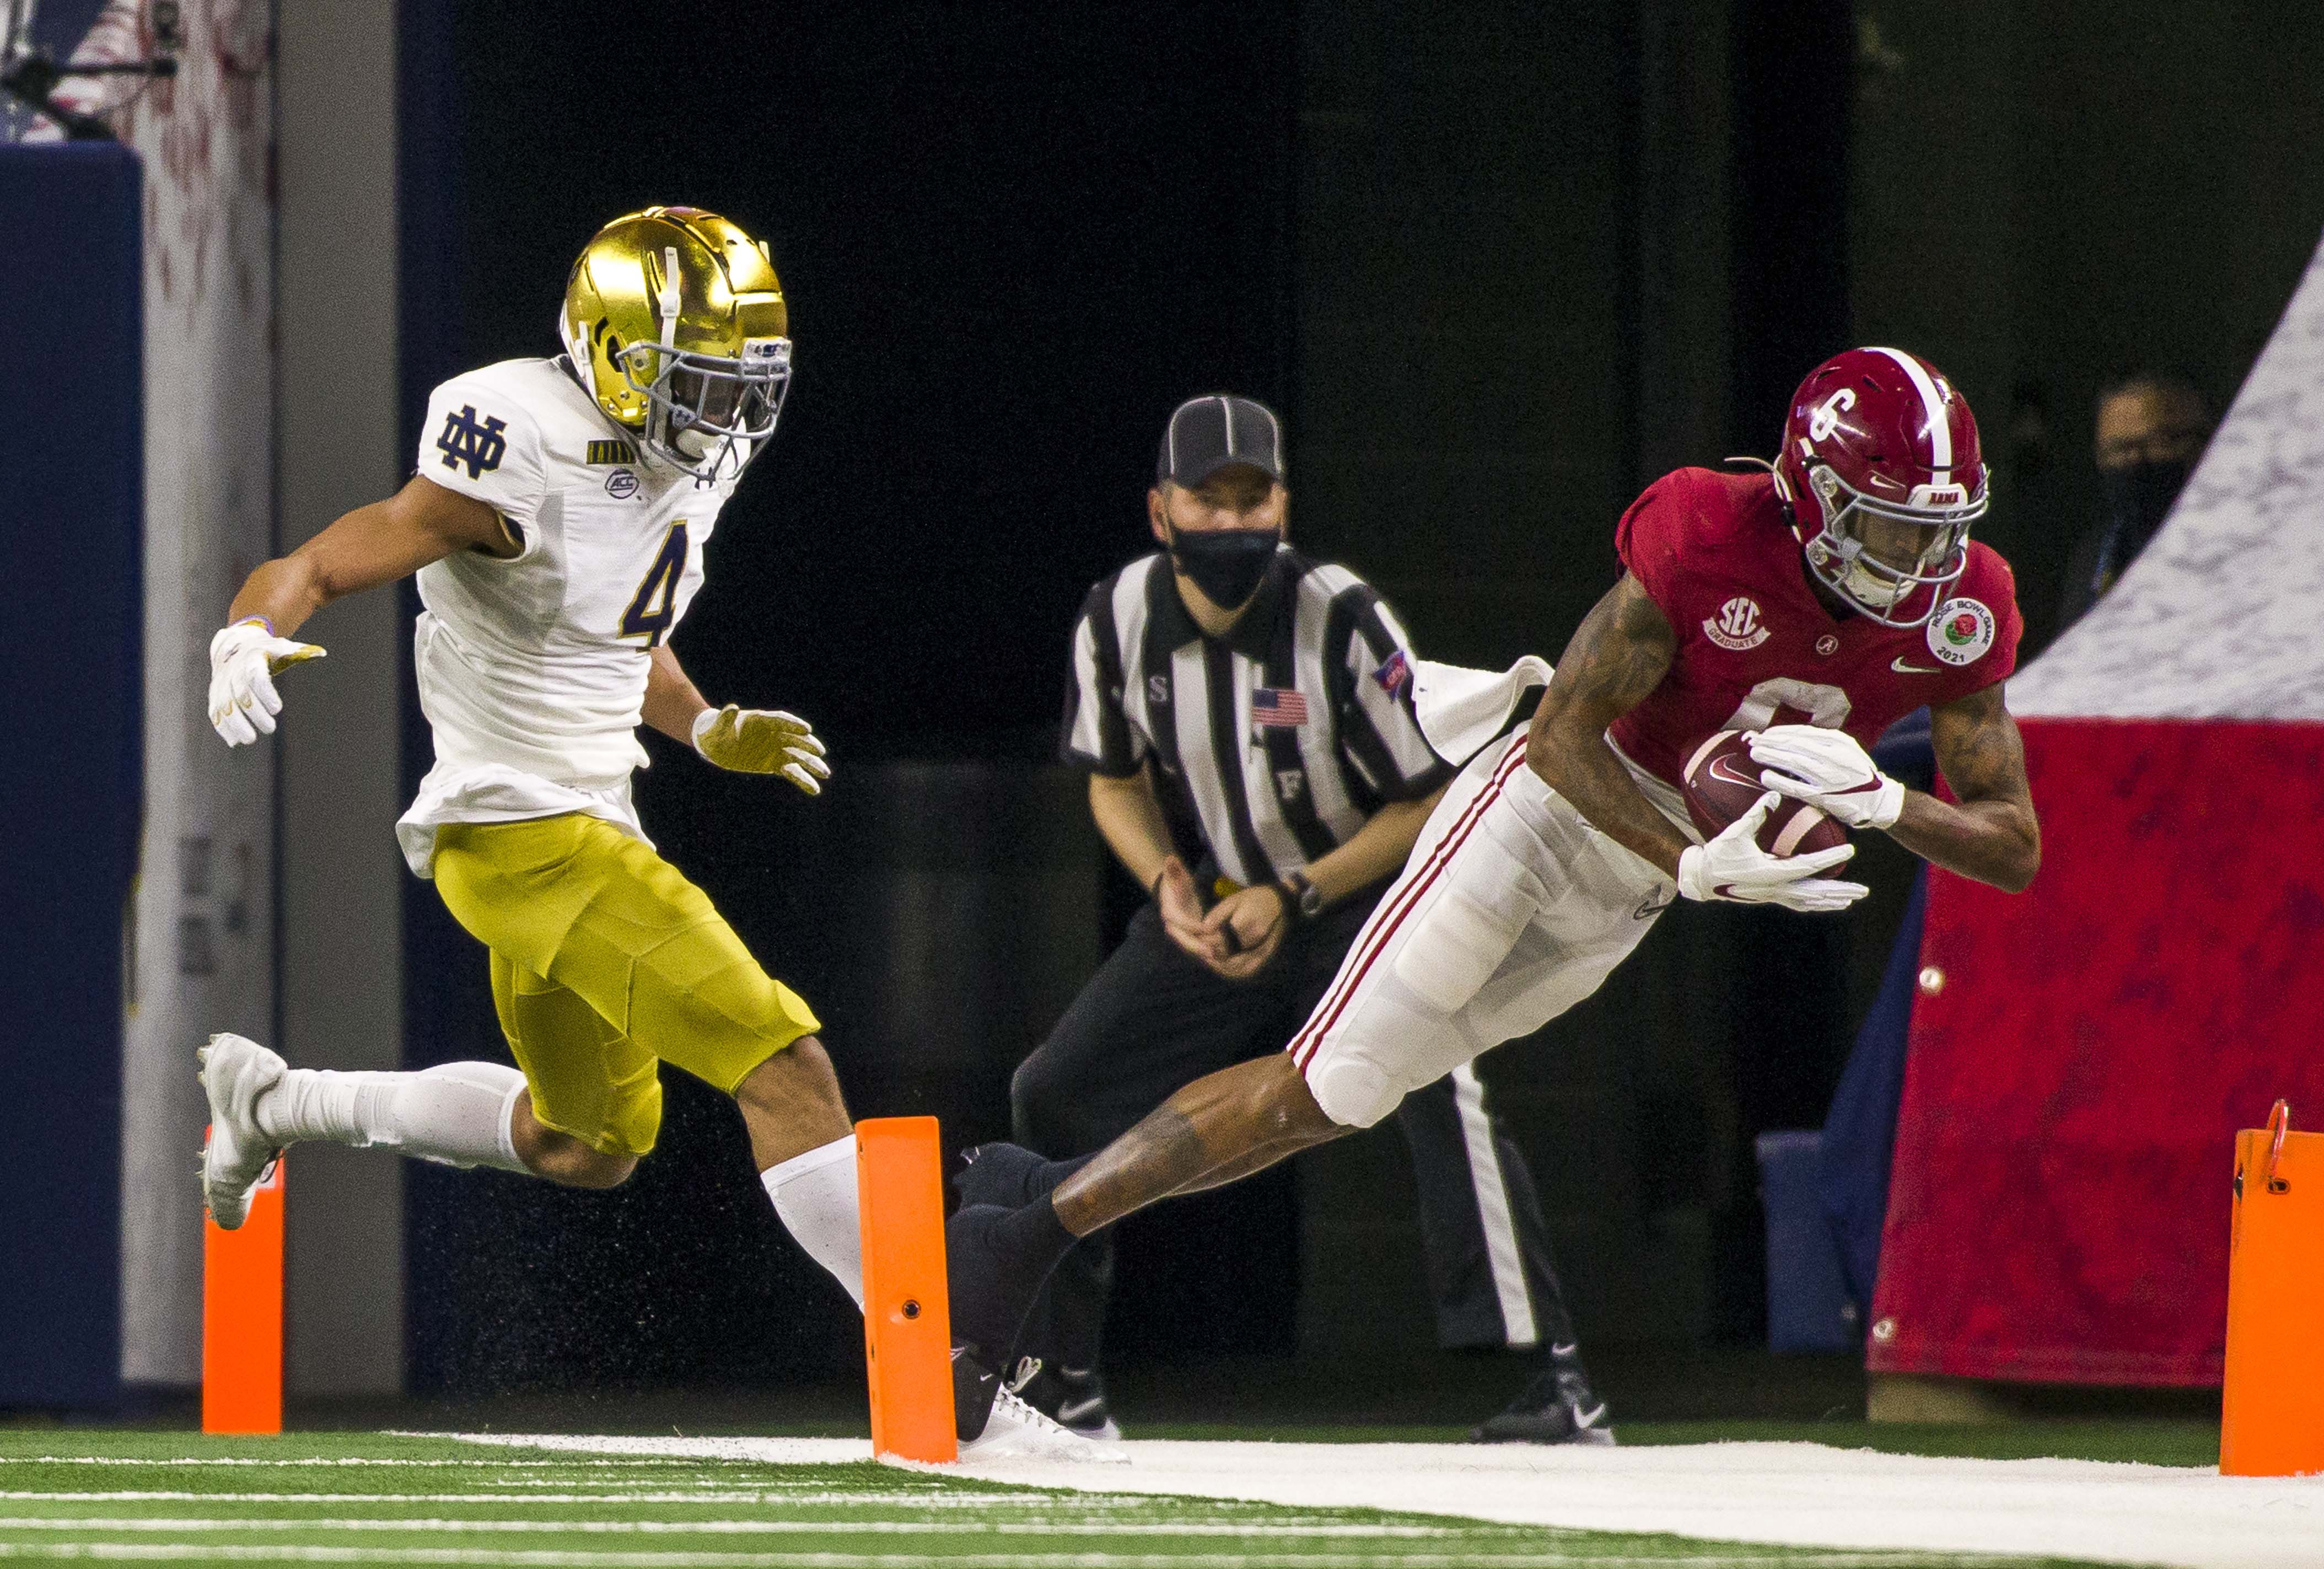 DeVonta Smith makes a touchdown catch next to Notre Dame s Nick McCloud during the 2021 College Football Playoff Rose Bowl game on Friday, Jan. 1, 2021, inside AT&T Stadium in Arlington, Texas.